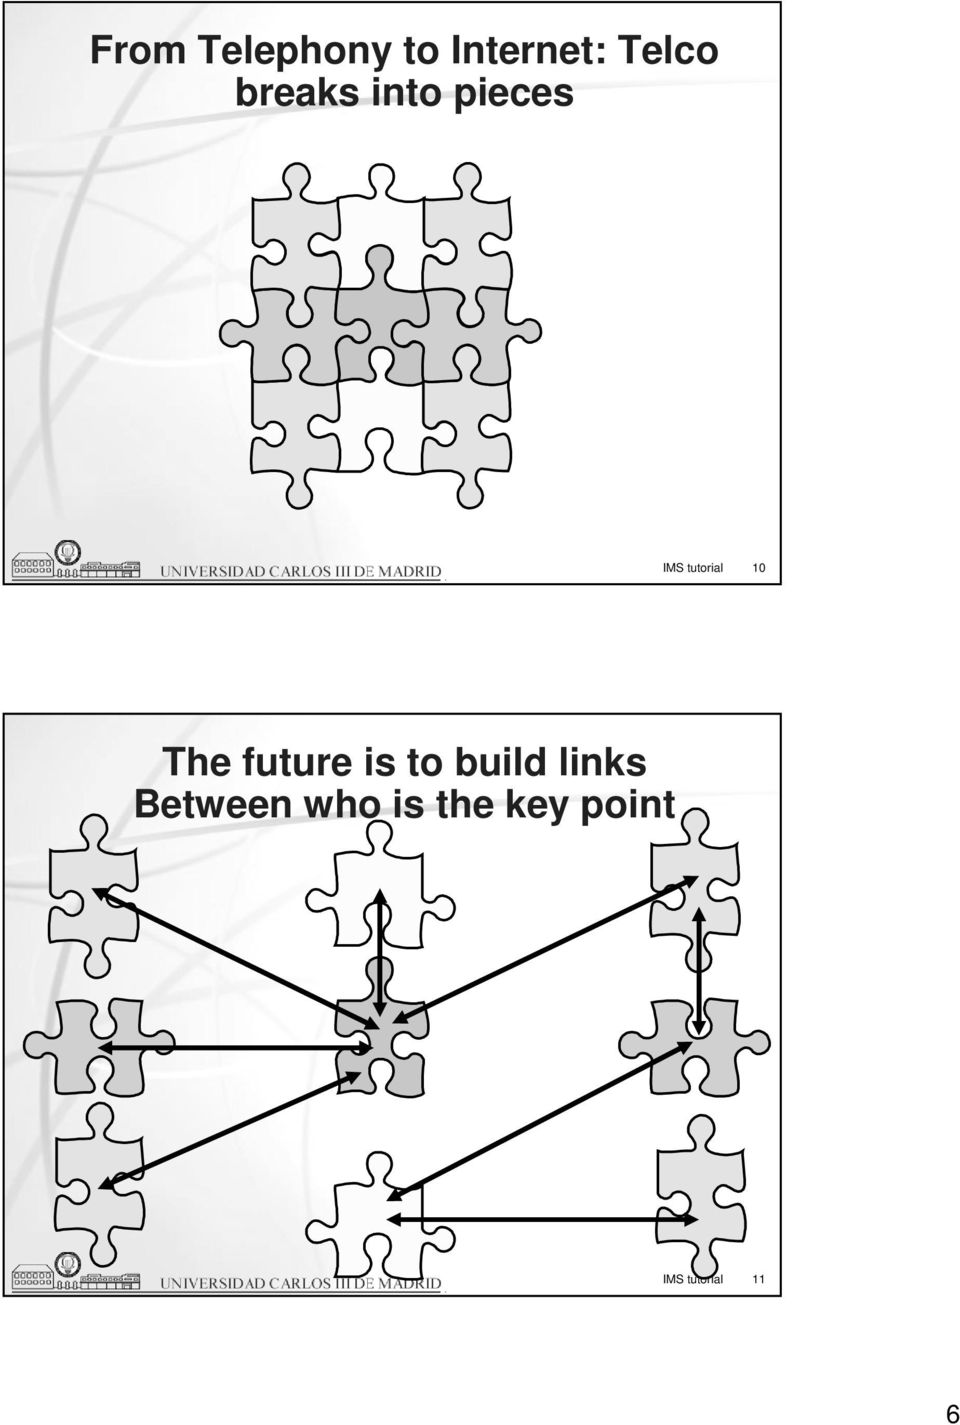 The future is to build links